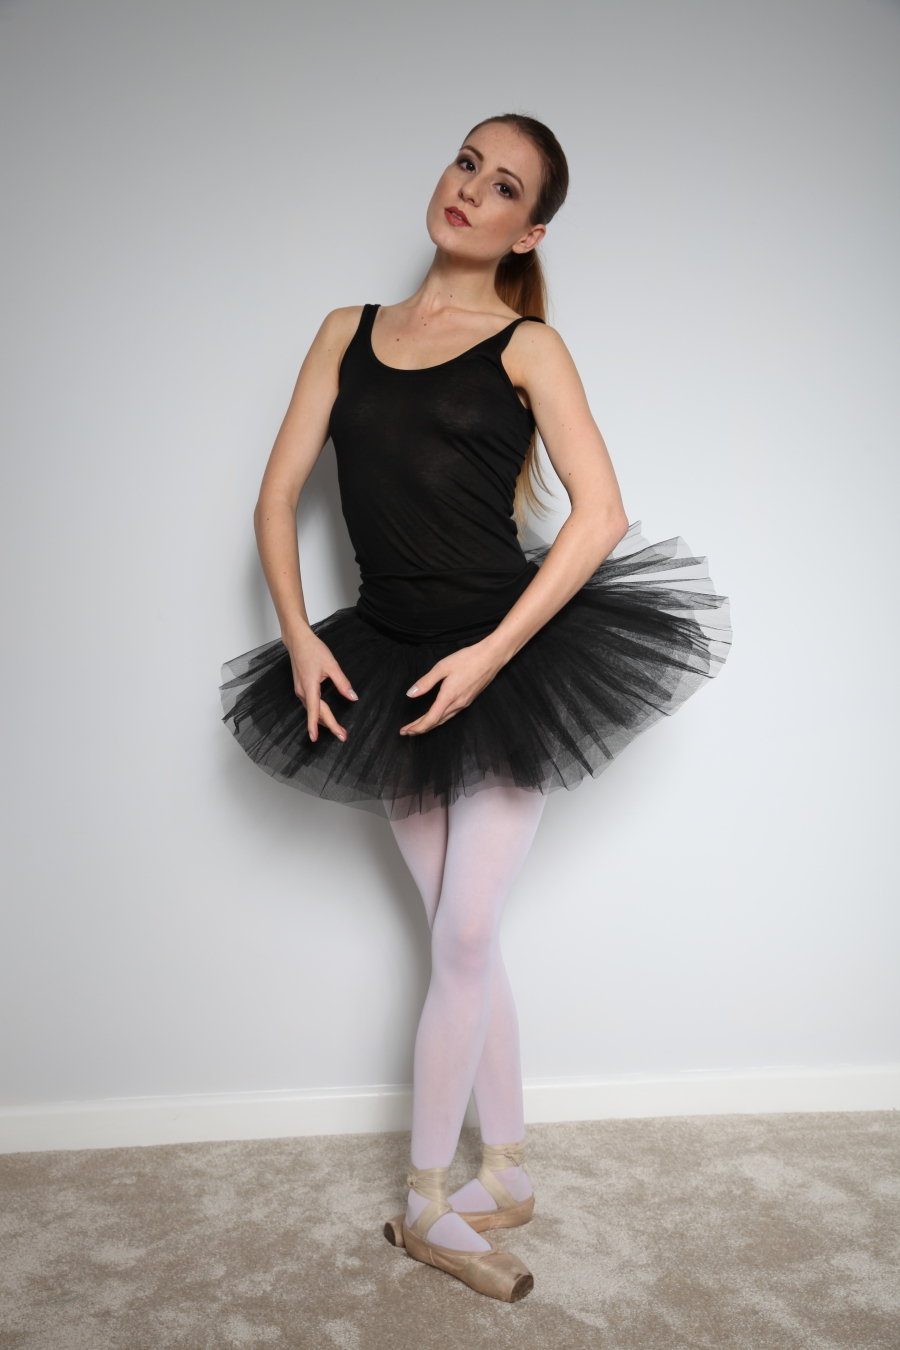 Ballet pose from Scarlot / Photography by ROGER PHOTOGRAPHY, Model Scarlot Rose, Taken at ROGER PHOTOGRAPHY / Uploaded 24th November 2016 @ 06:20 PM